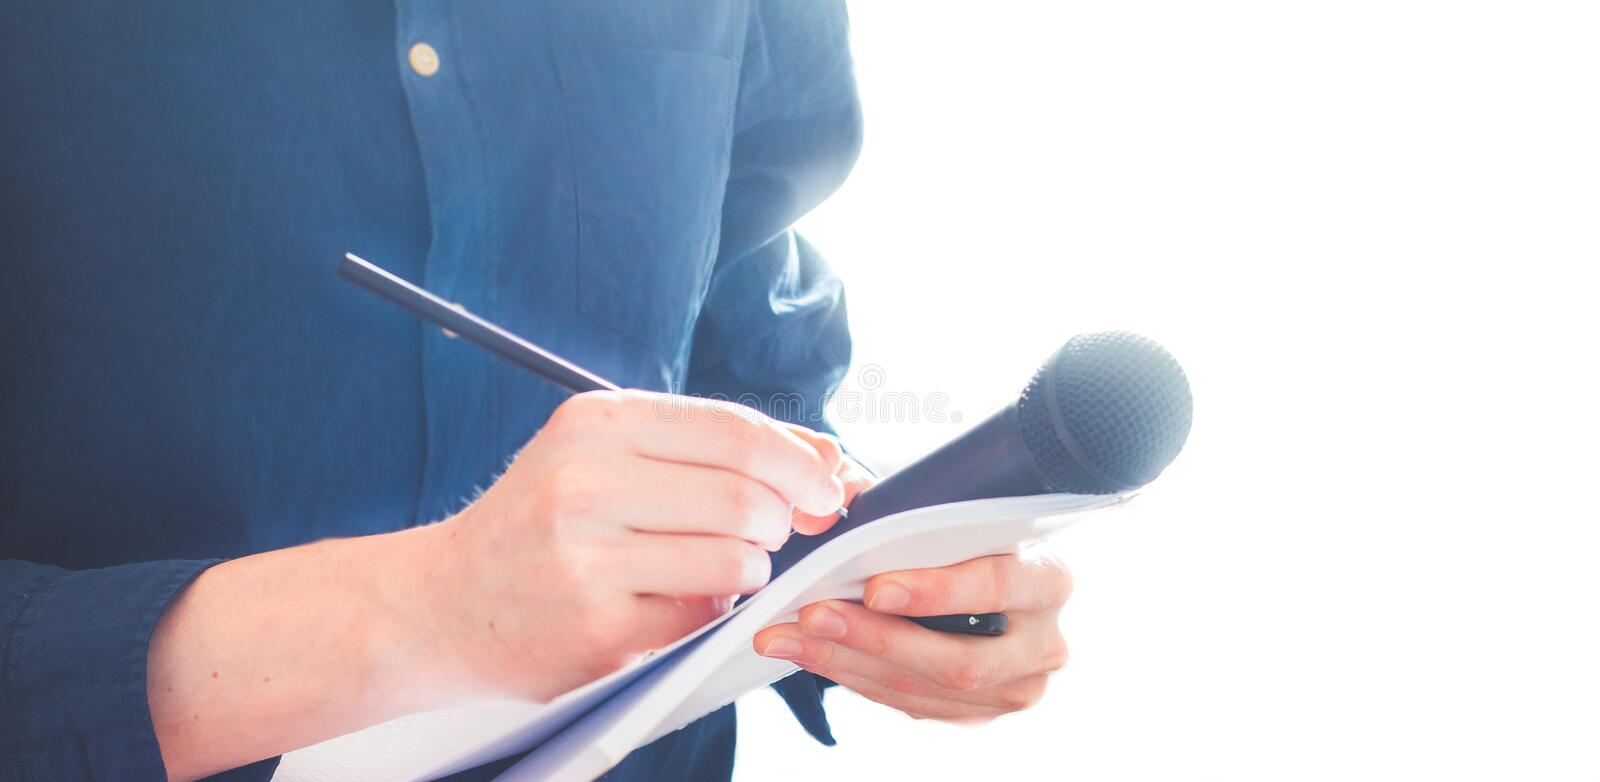 Male journalist at news conference, holding microphone and taking notes stock photos